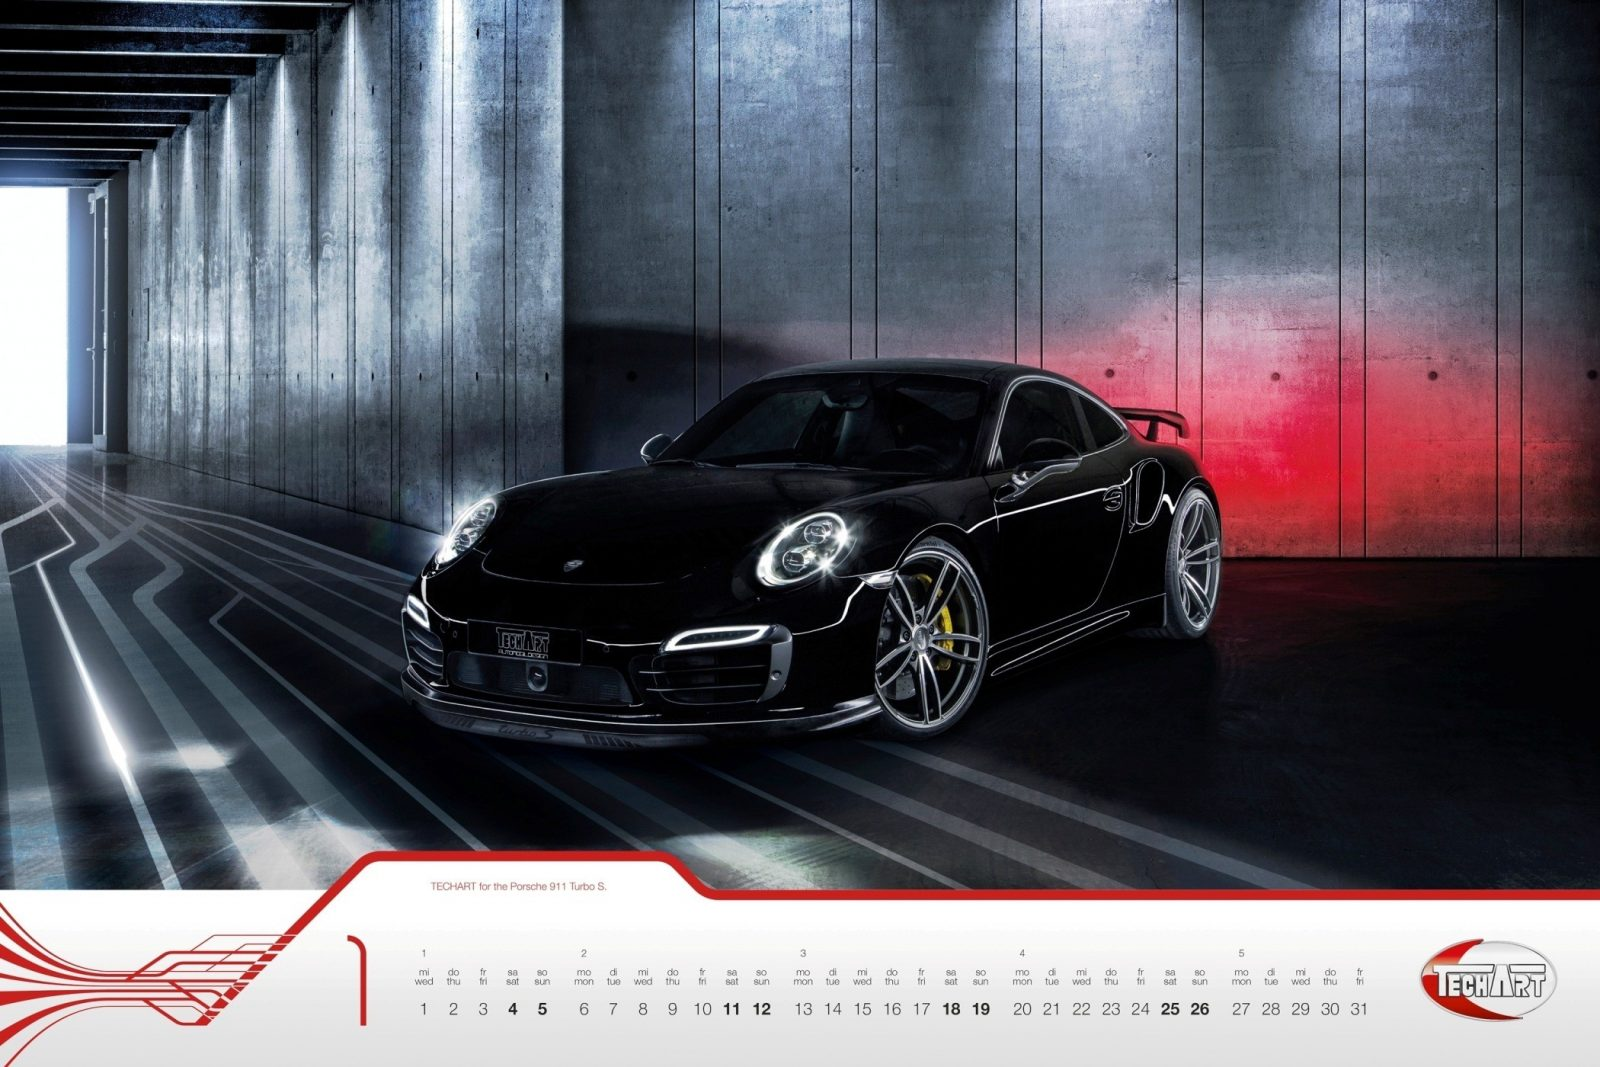 TECHART_Calendar_2014_Januarya